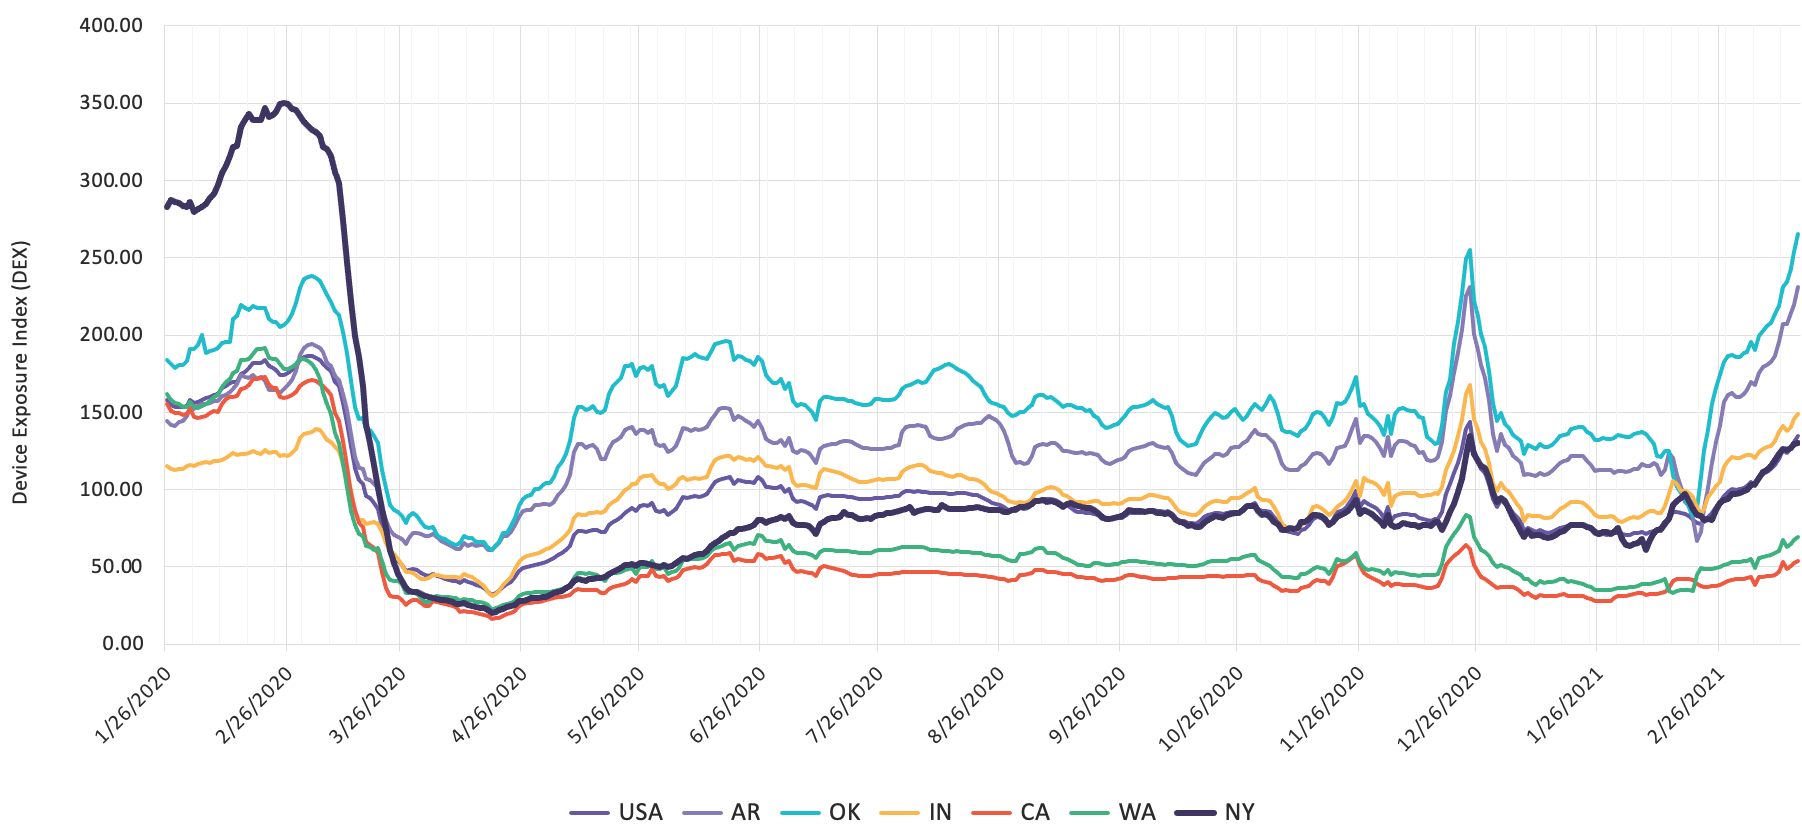 Device Activity: Movement Trends by State